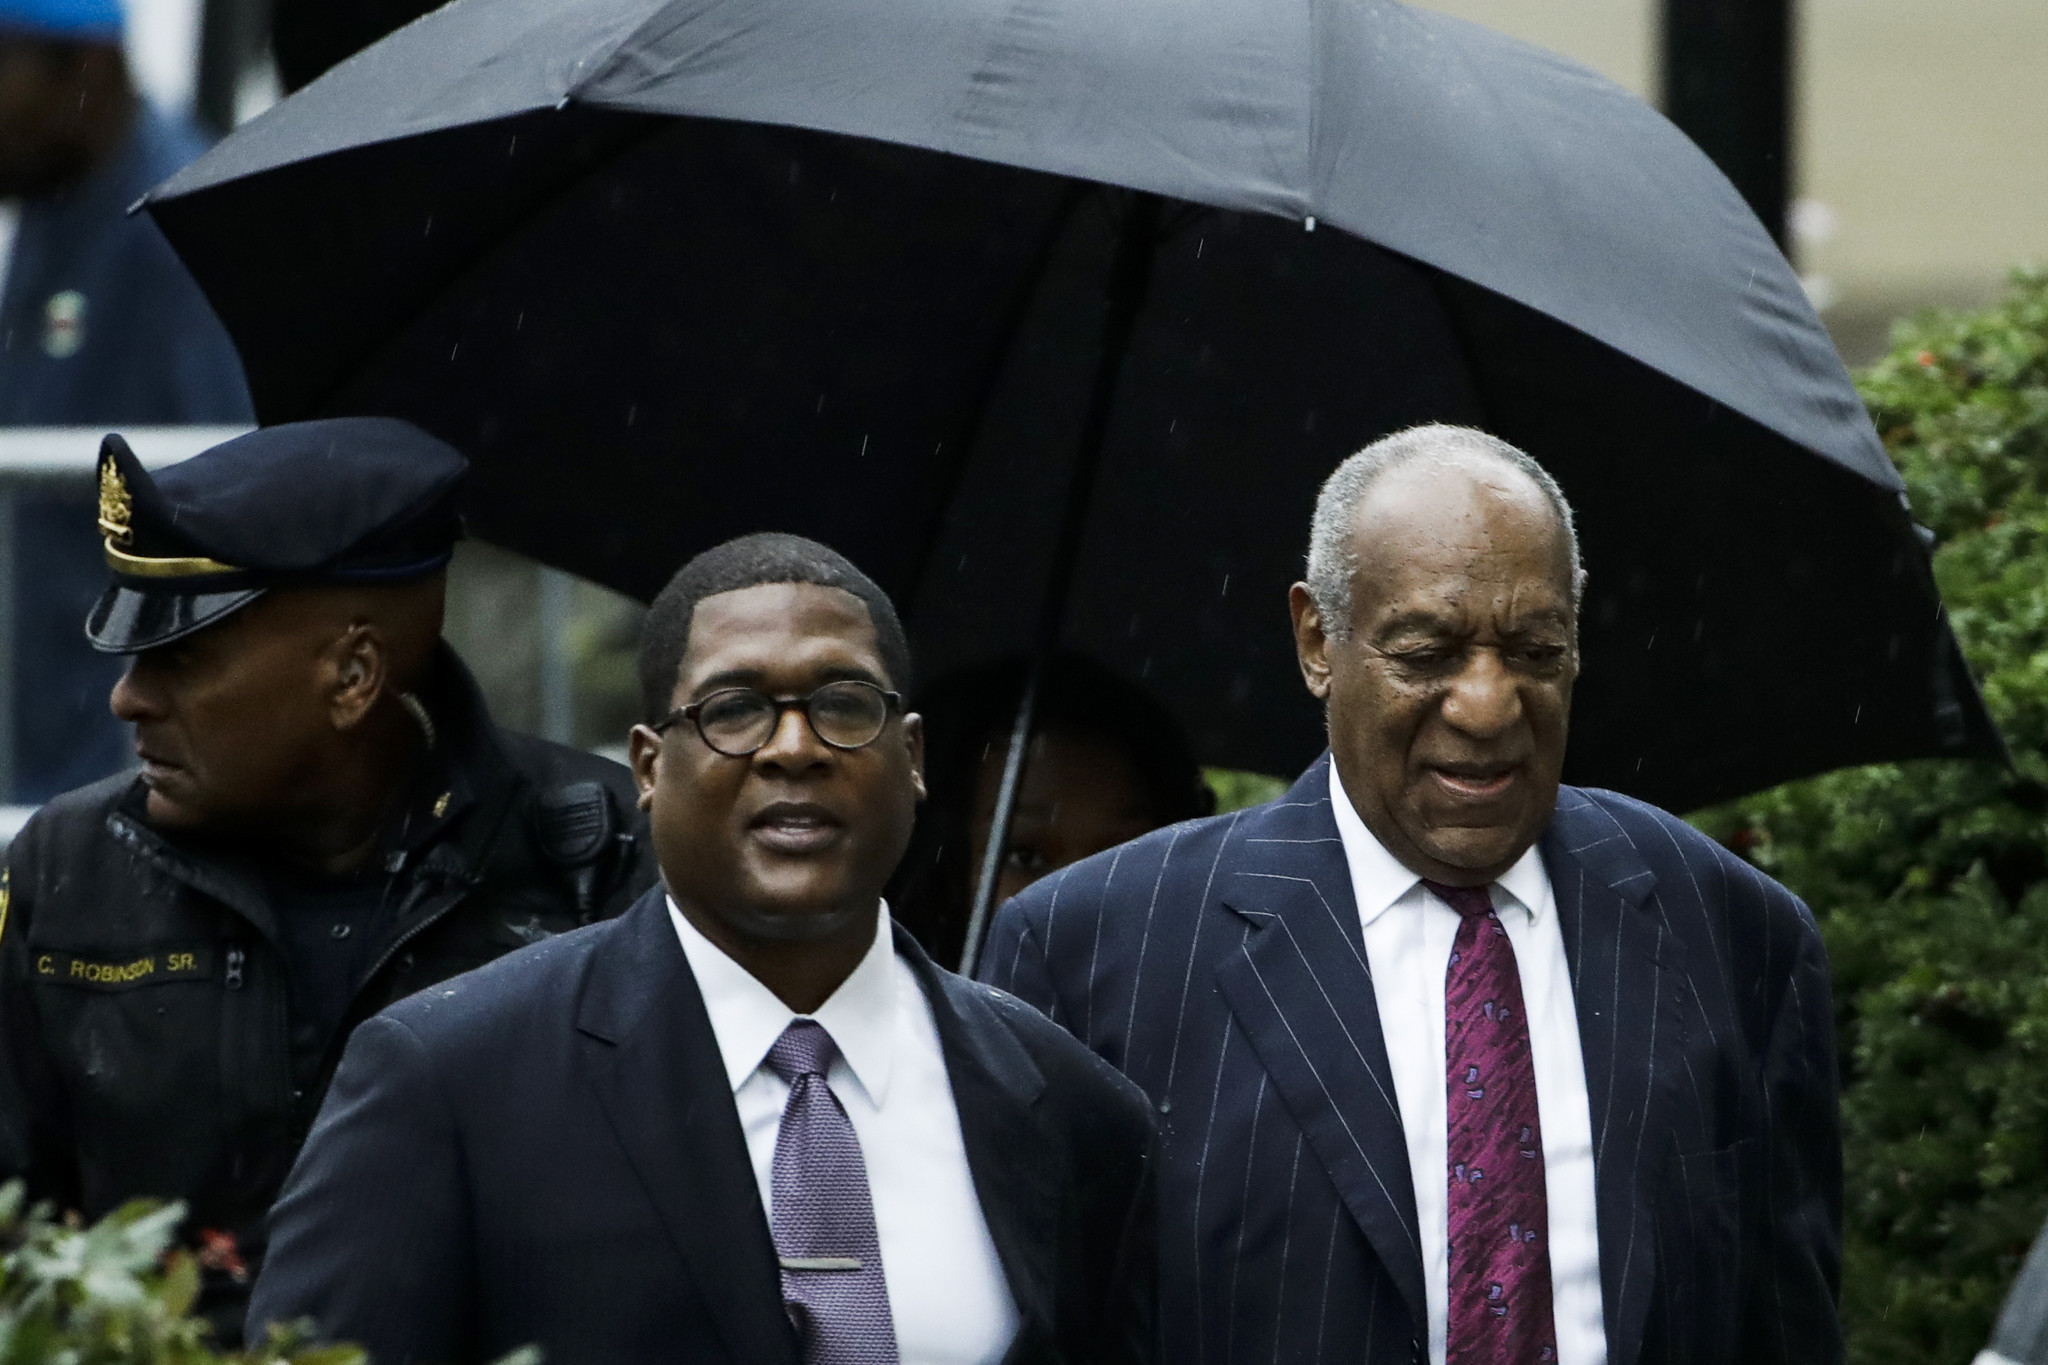 Bill Cosby's publicist calls Eddie Murphy a 'Hollywood slave' after 'Saturday Night Live' jokes